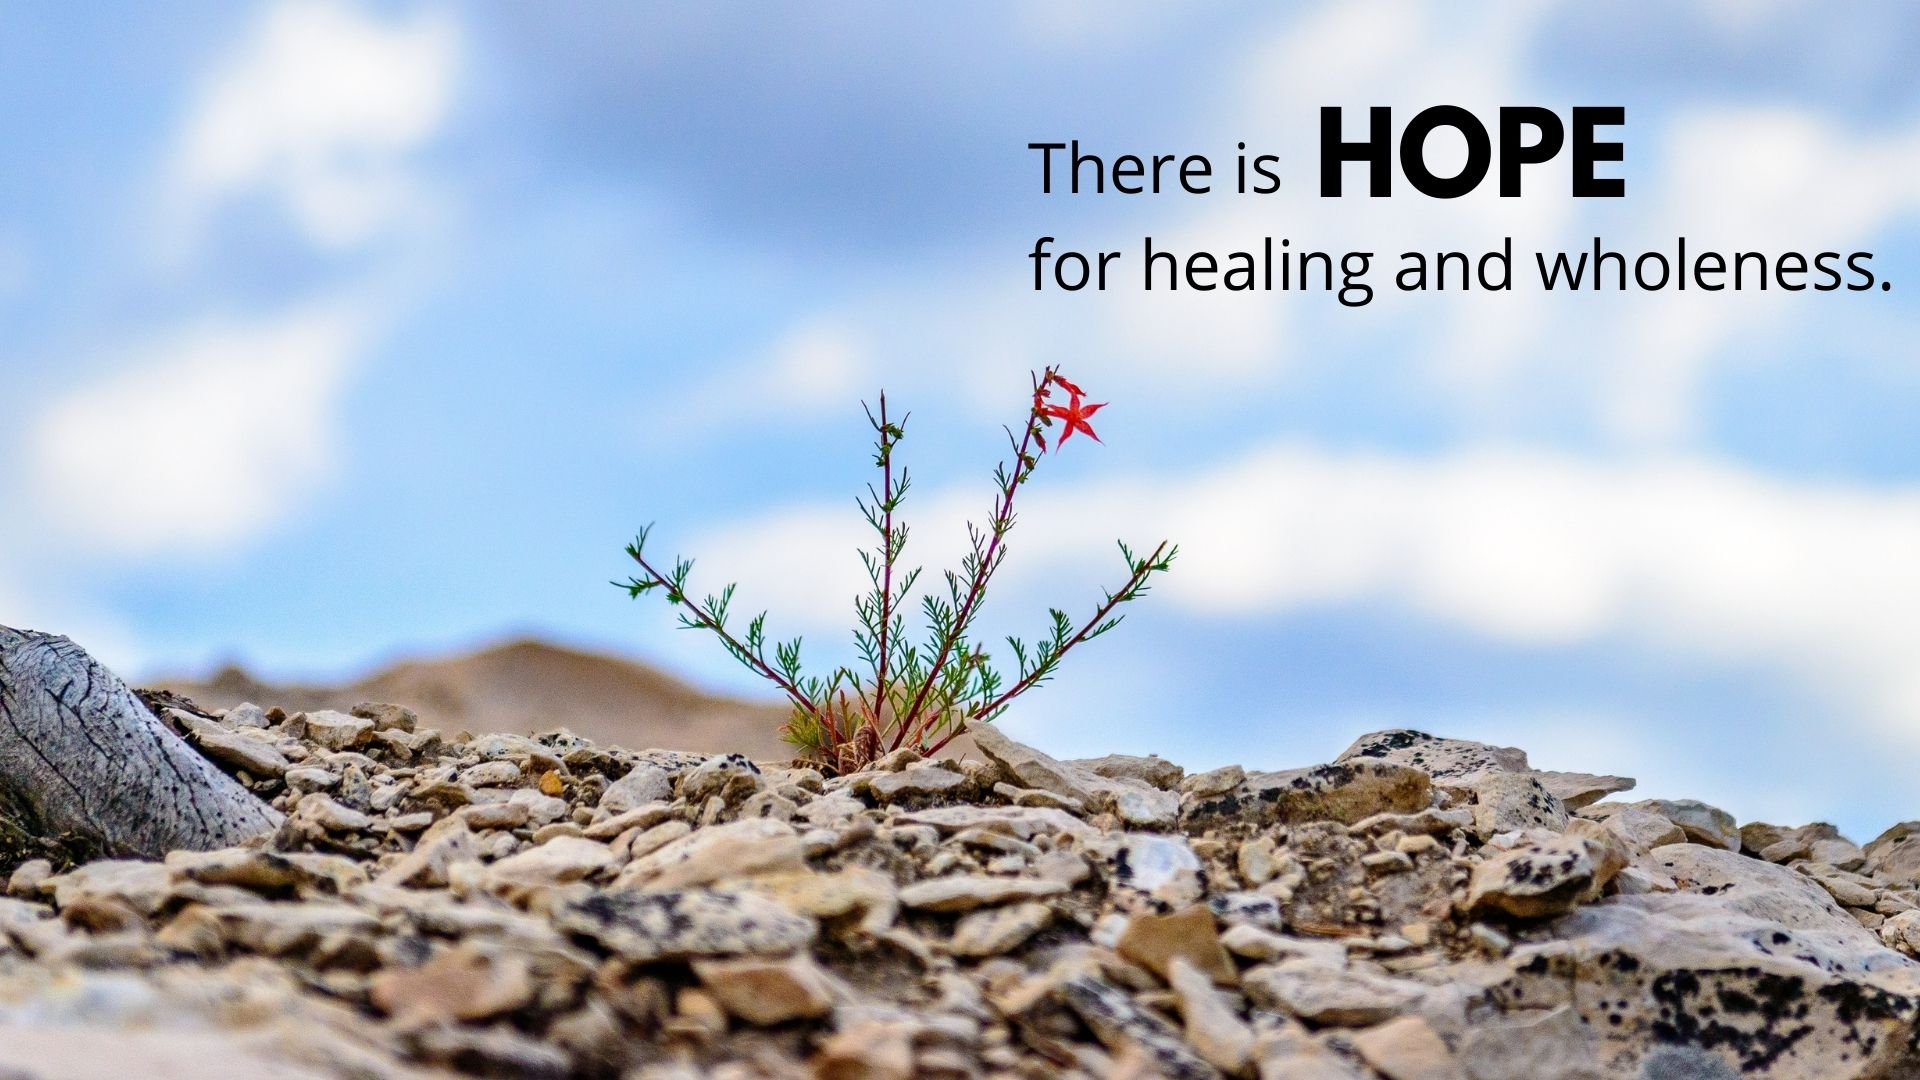 THERE IS HOPE for healing and wholeness